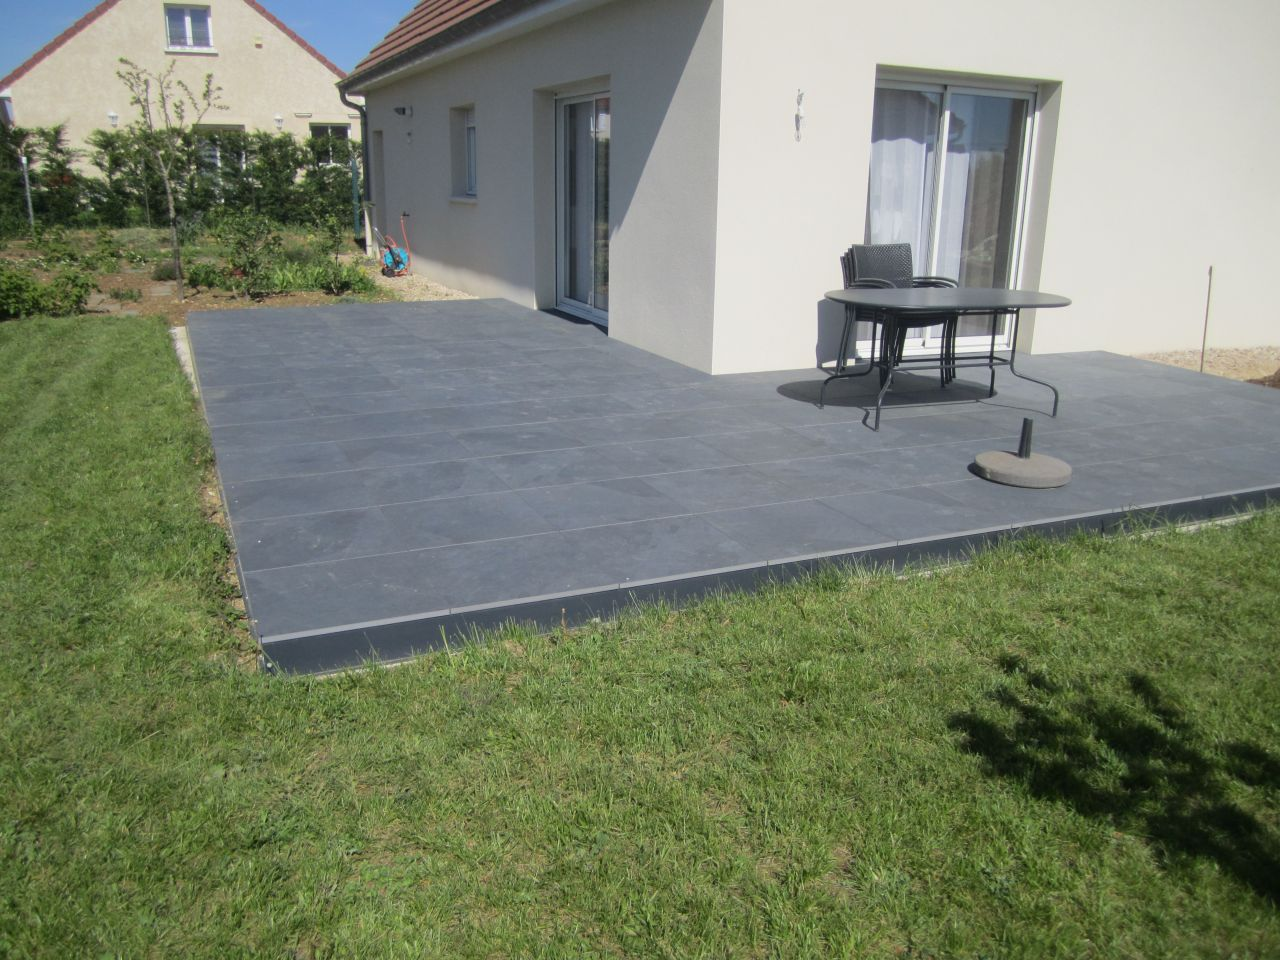 Terrasse En Travertin Avis Dalle Sur Plot Tarif Veranda Styledevie Fr